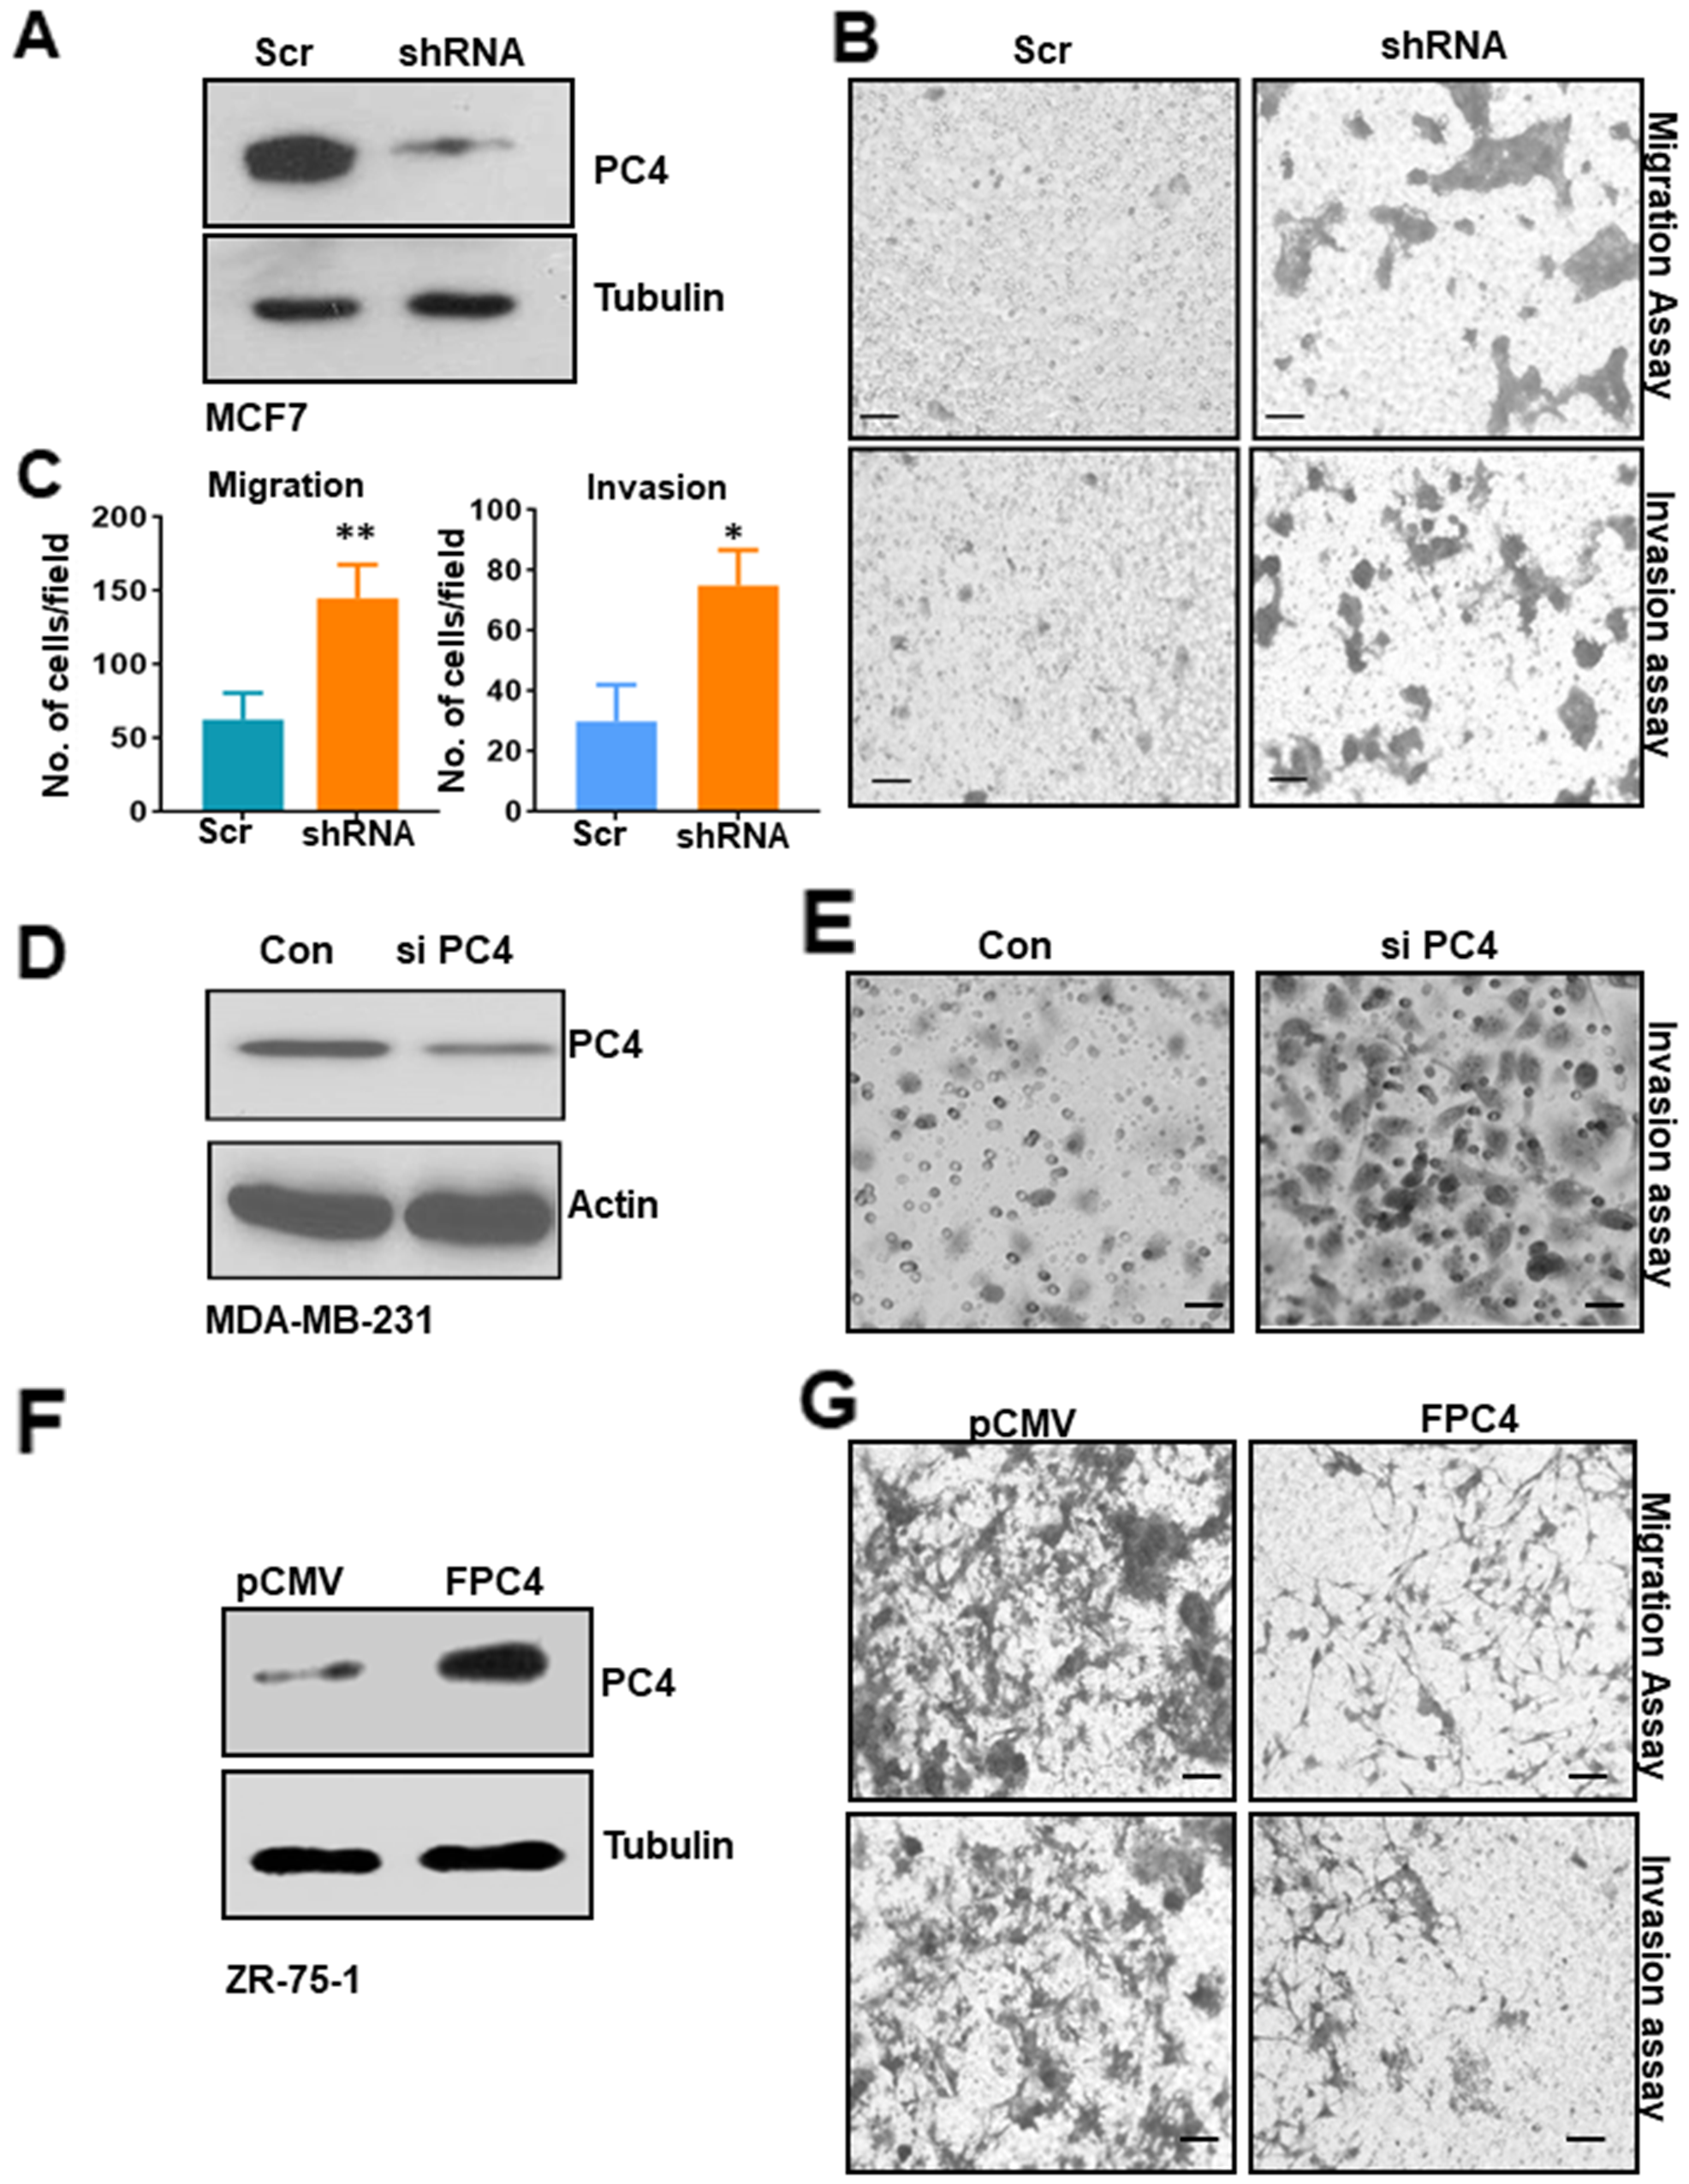 PC4 downregulation in breast cancer cell line enhances its tumorigenic properties.